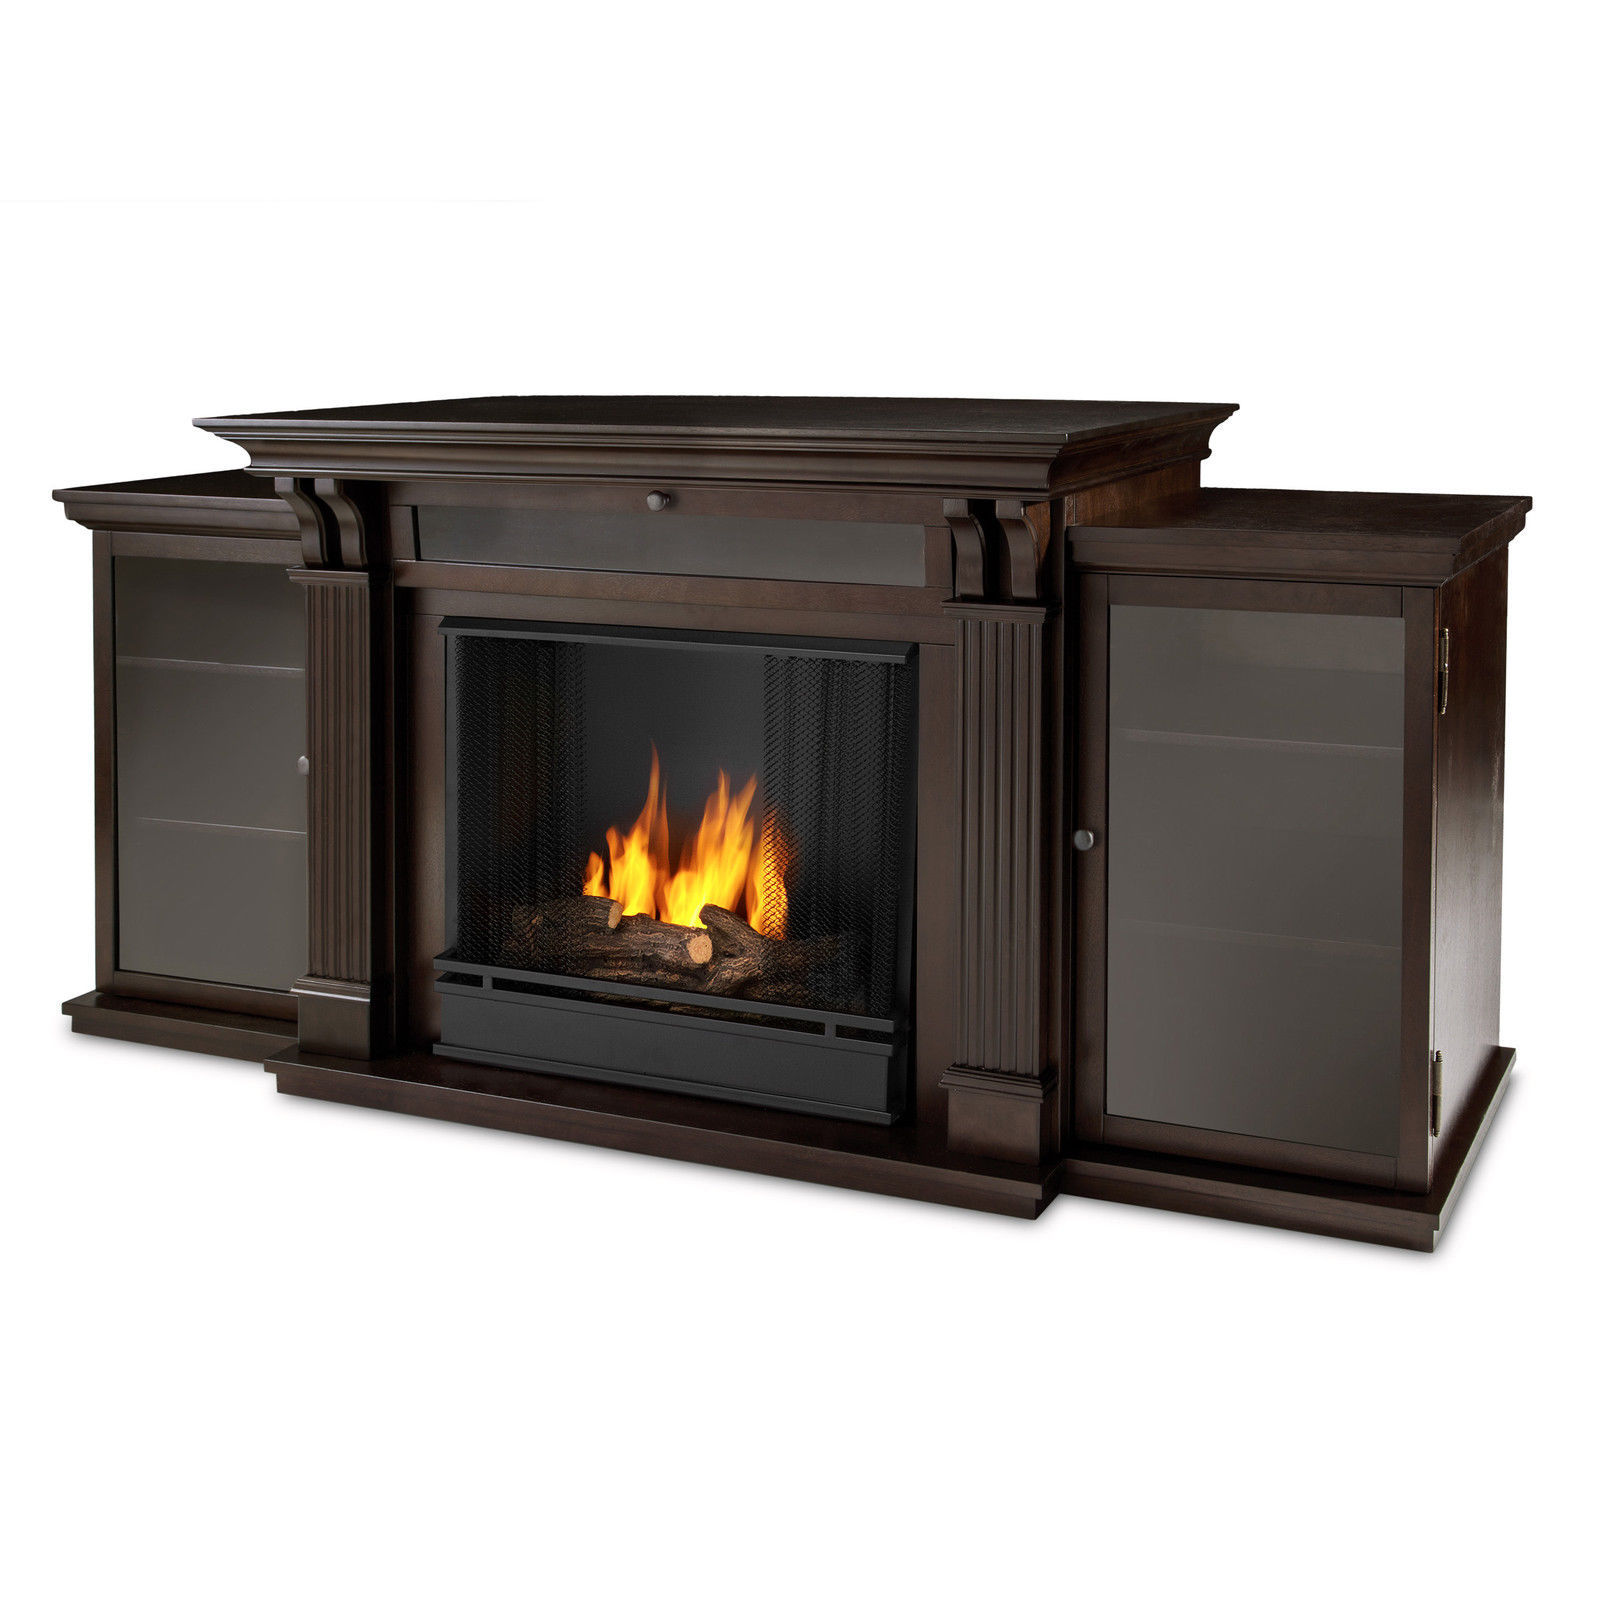 Realflame Calie Gel Fireplace Media Entertainment Center Heater 2 Colors Fireplaces